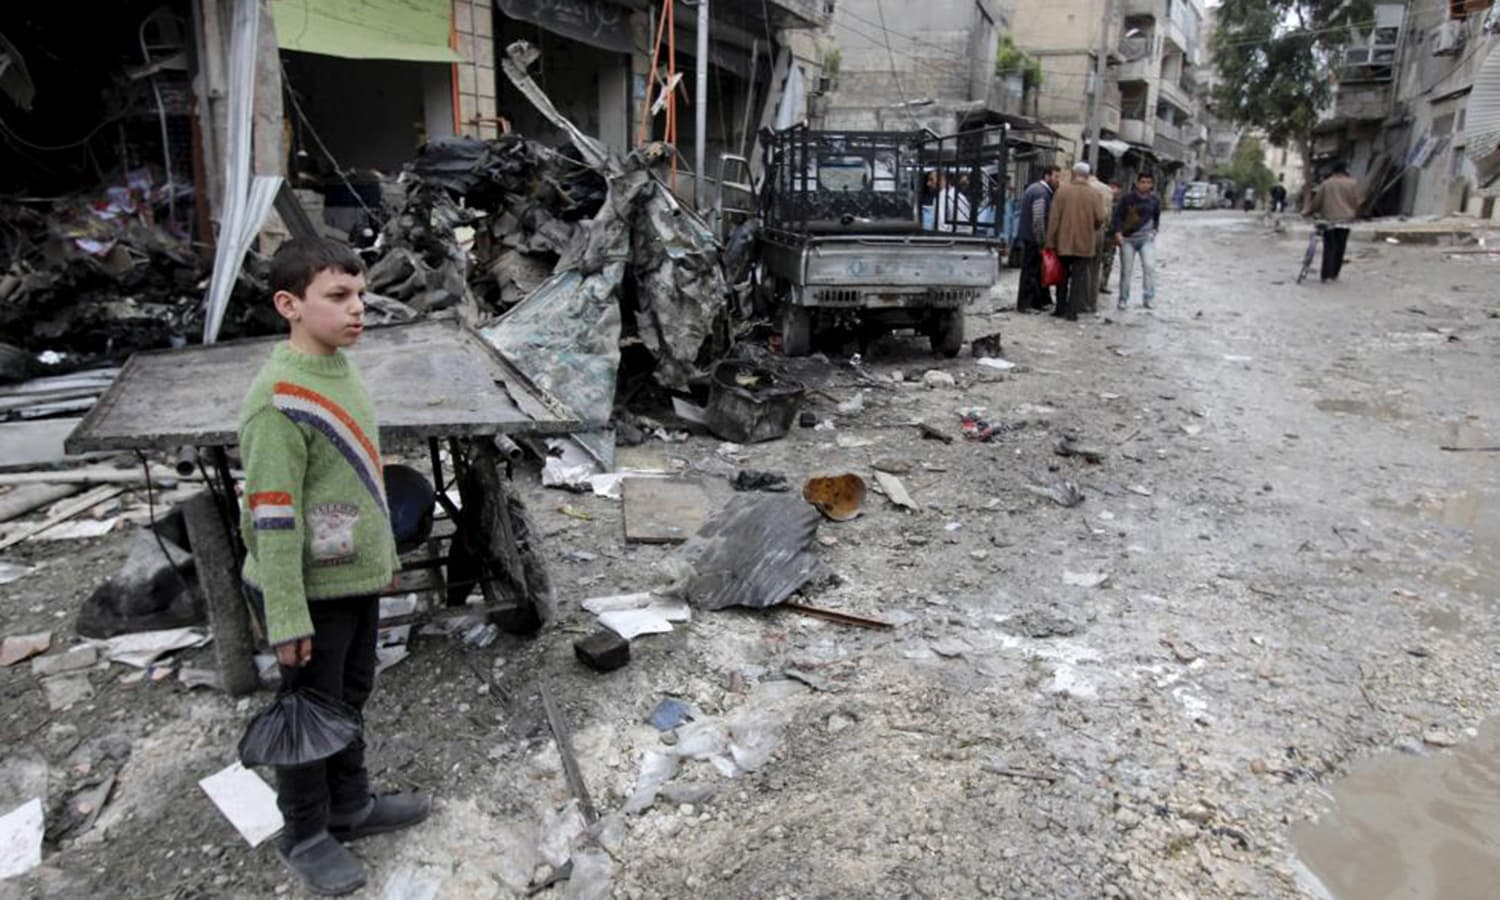 Residents inspect the damage from what activists said was due to shelling by warplanes loyal to Syria's president Bashar Al-Assad inside a vegetable market in the al-Maadi neighborhood of Aleppo.— Reuters